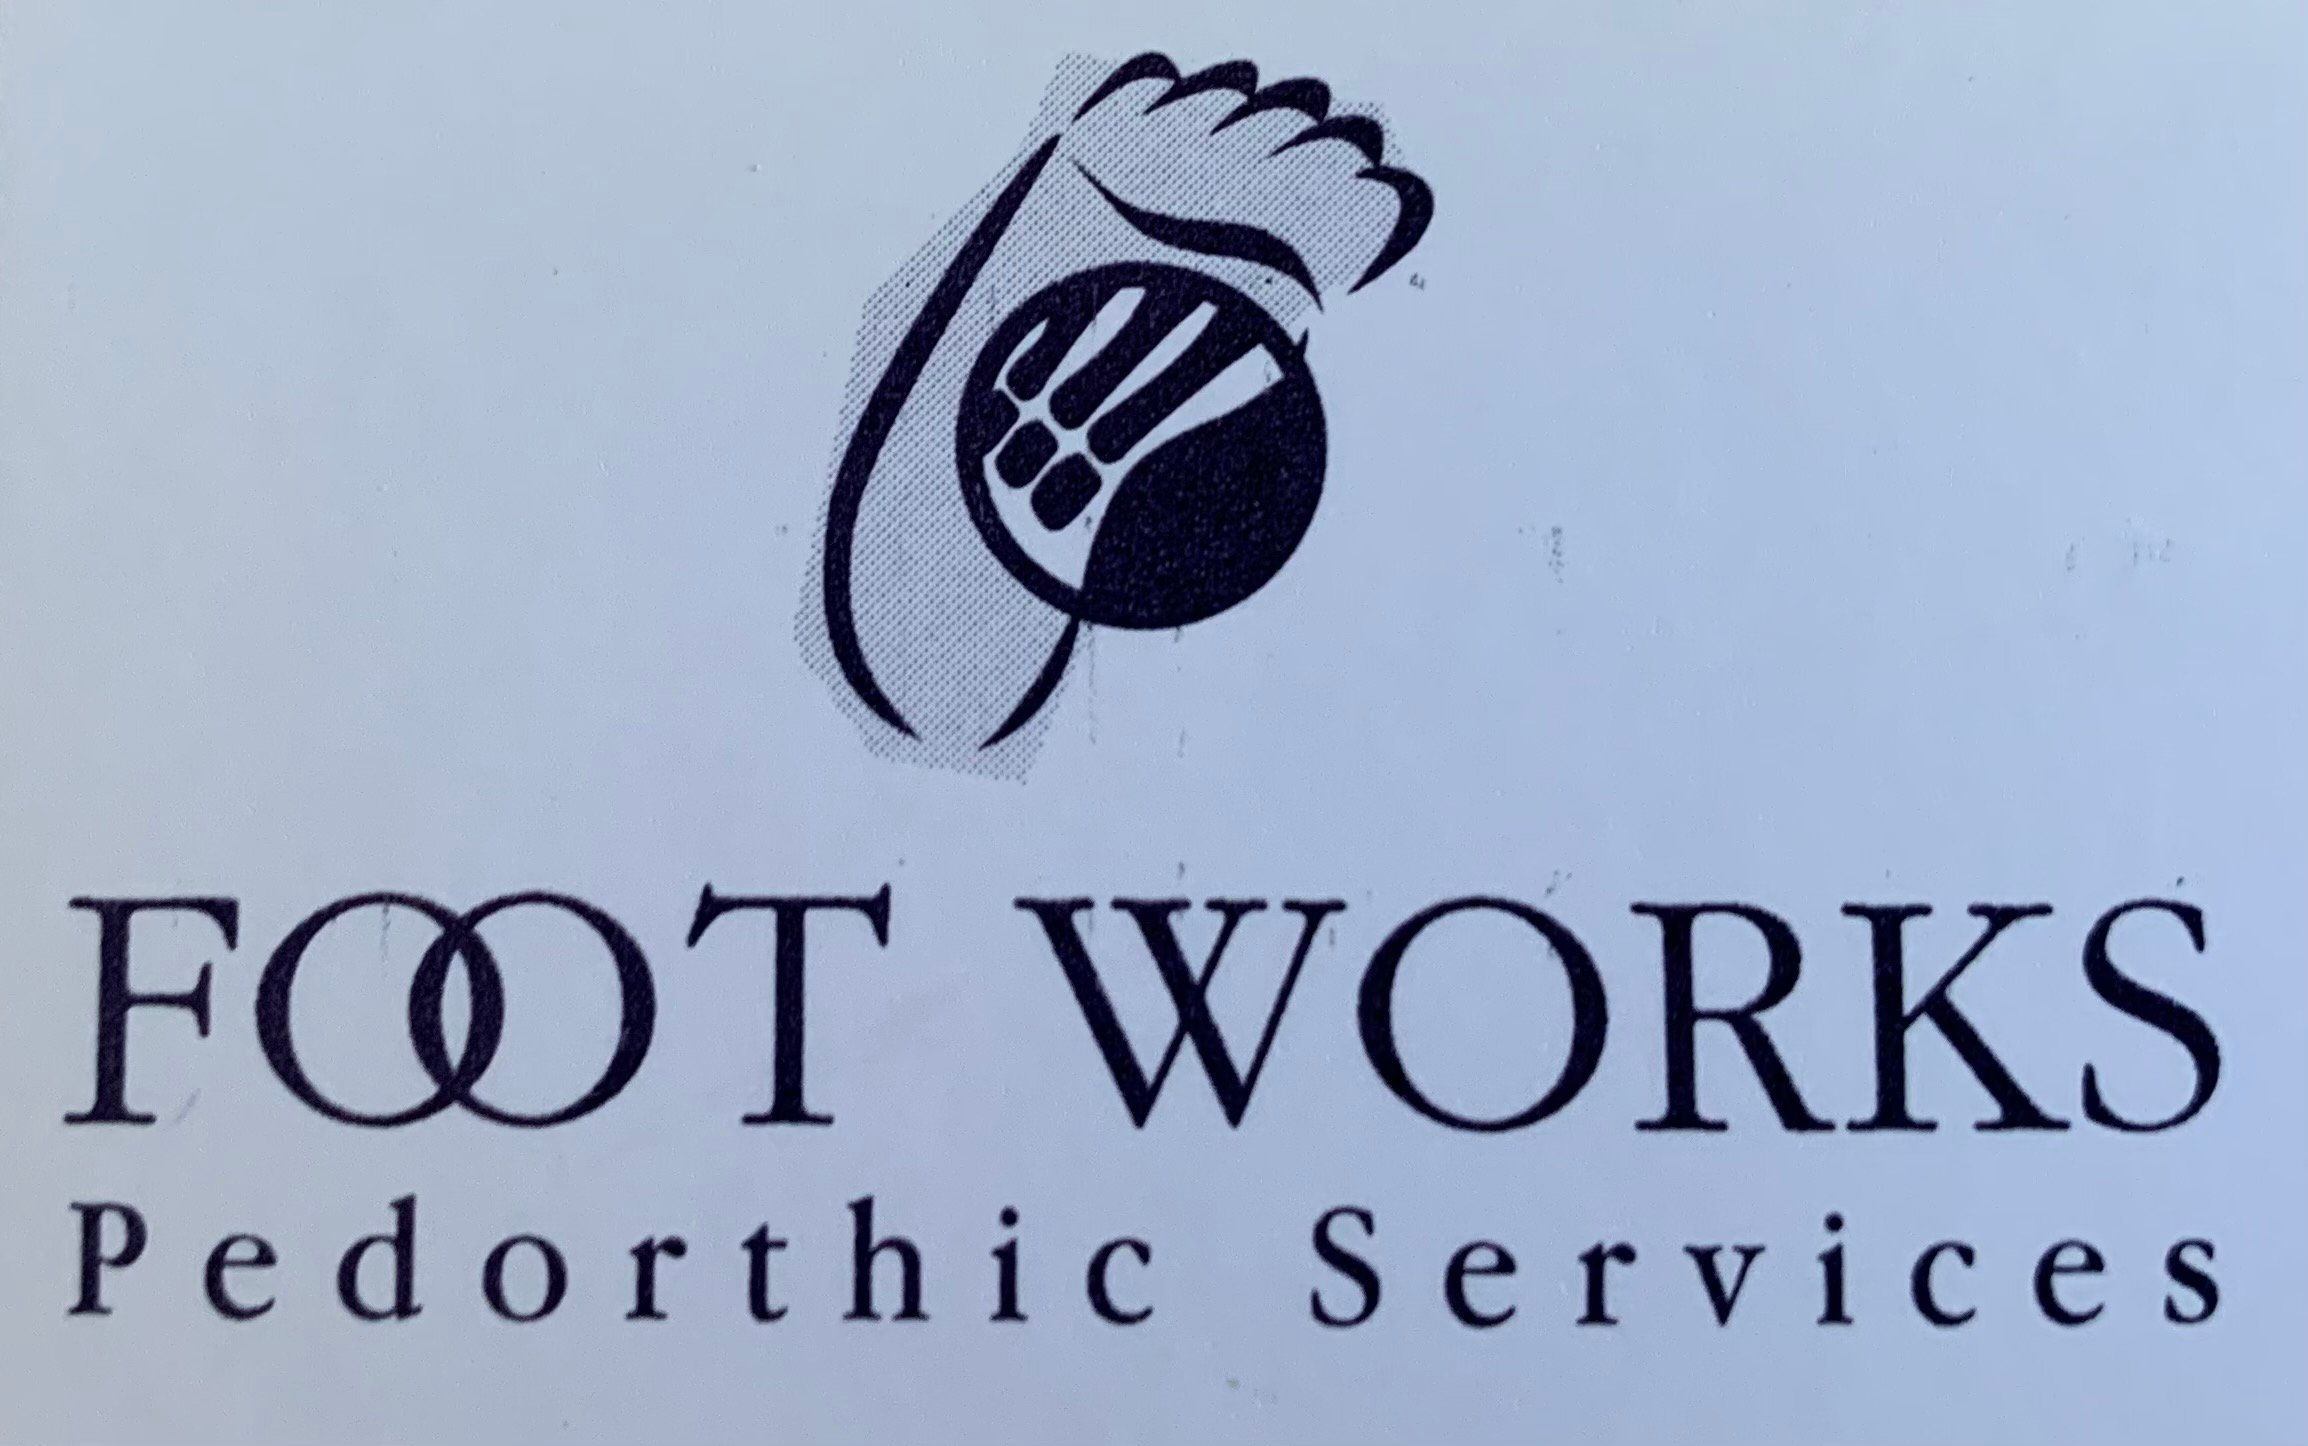 FOOT WORKS PEDORTHIC SERVICES